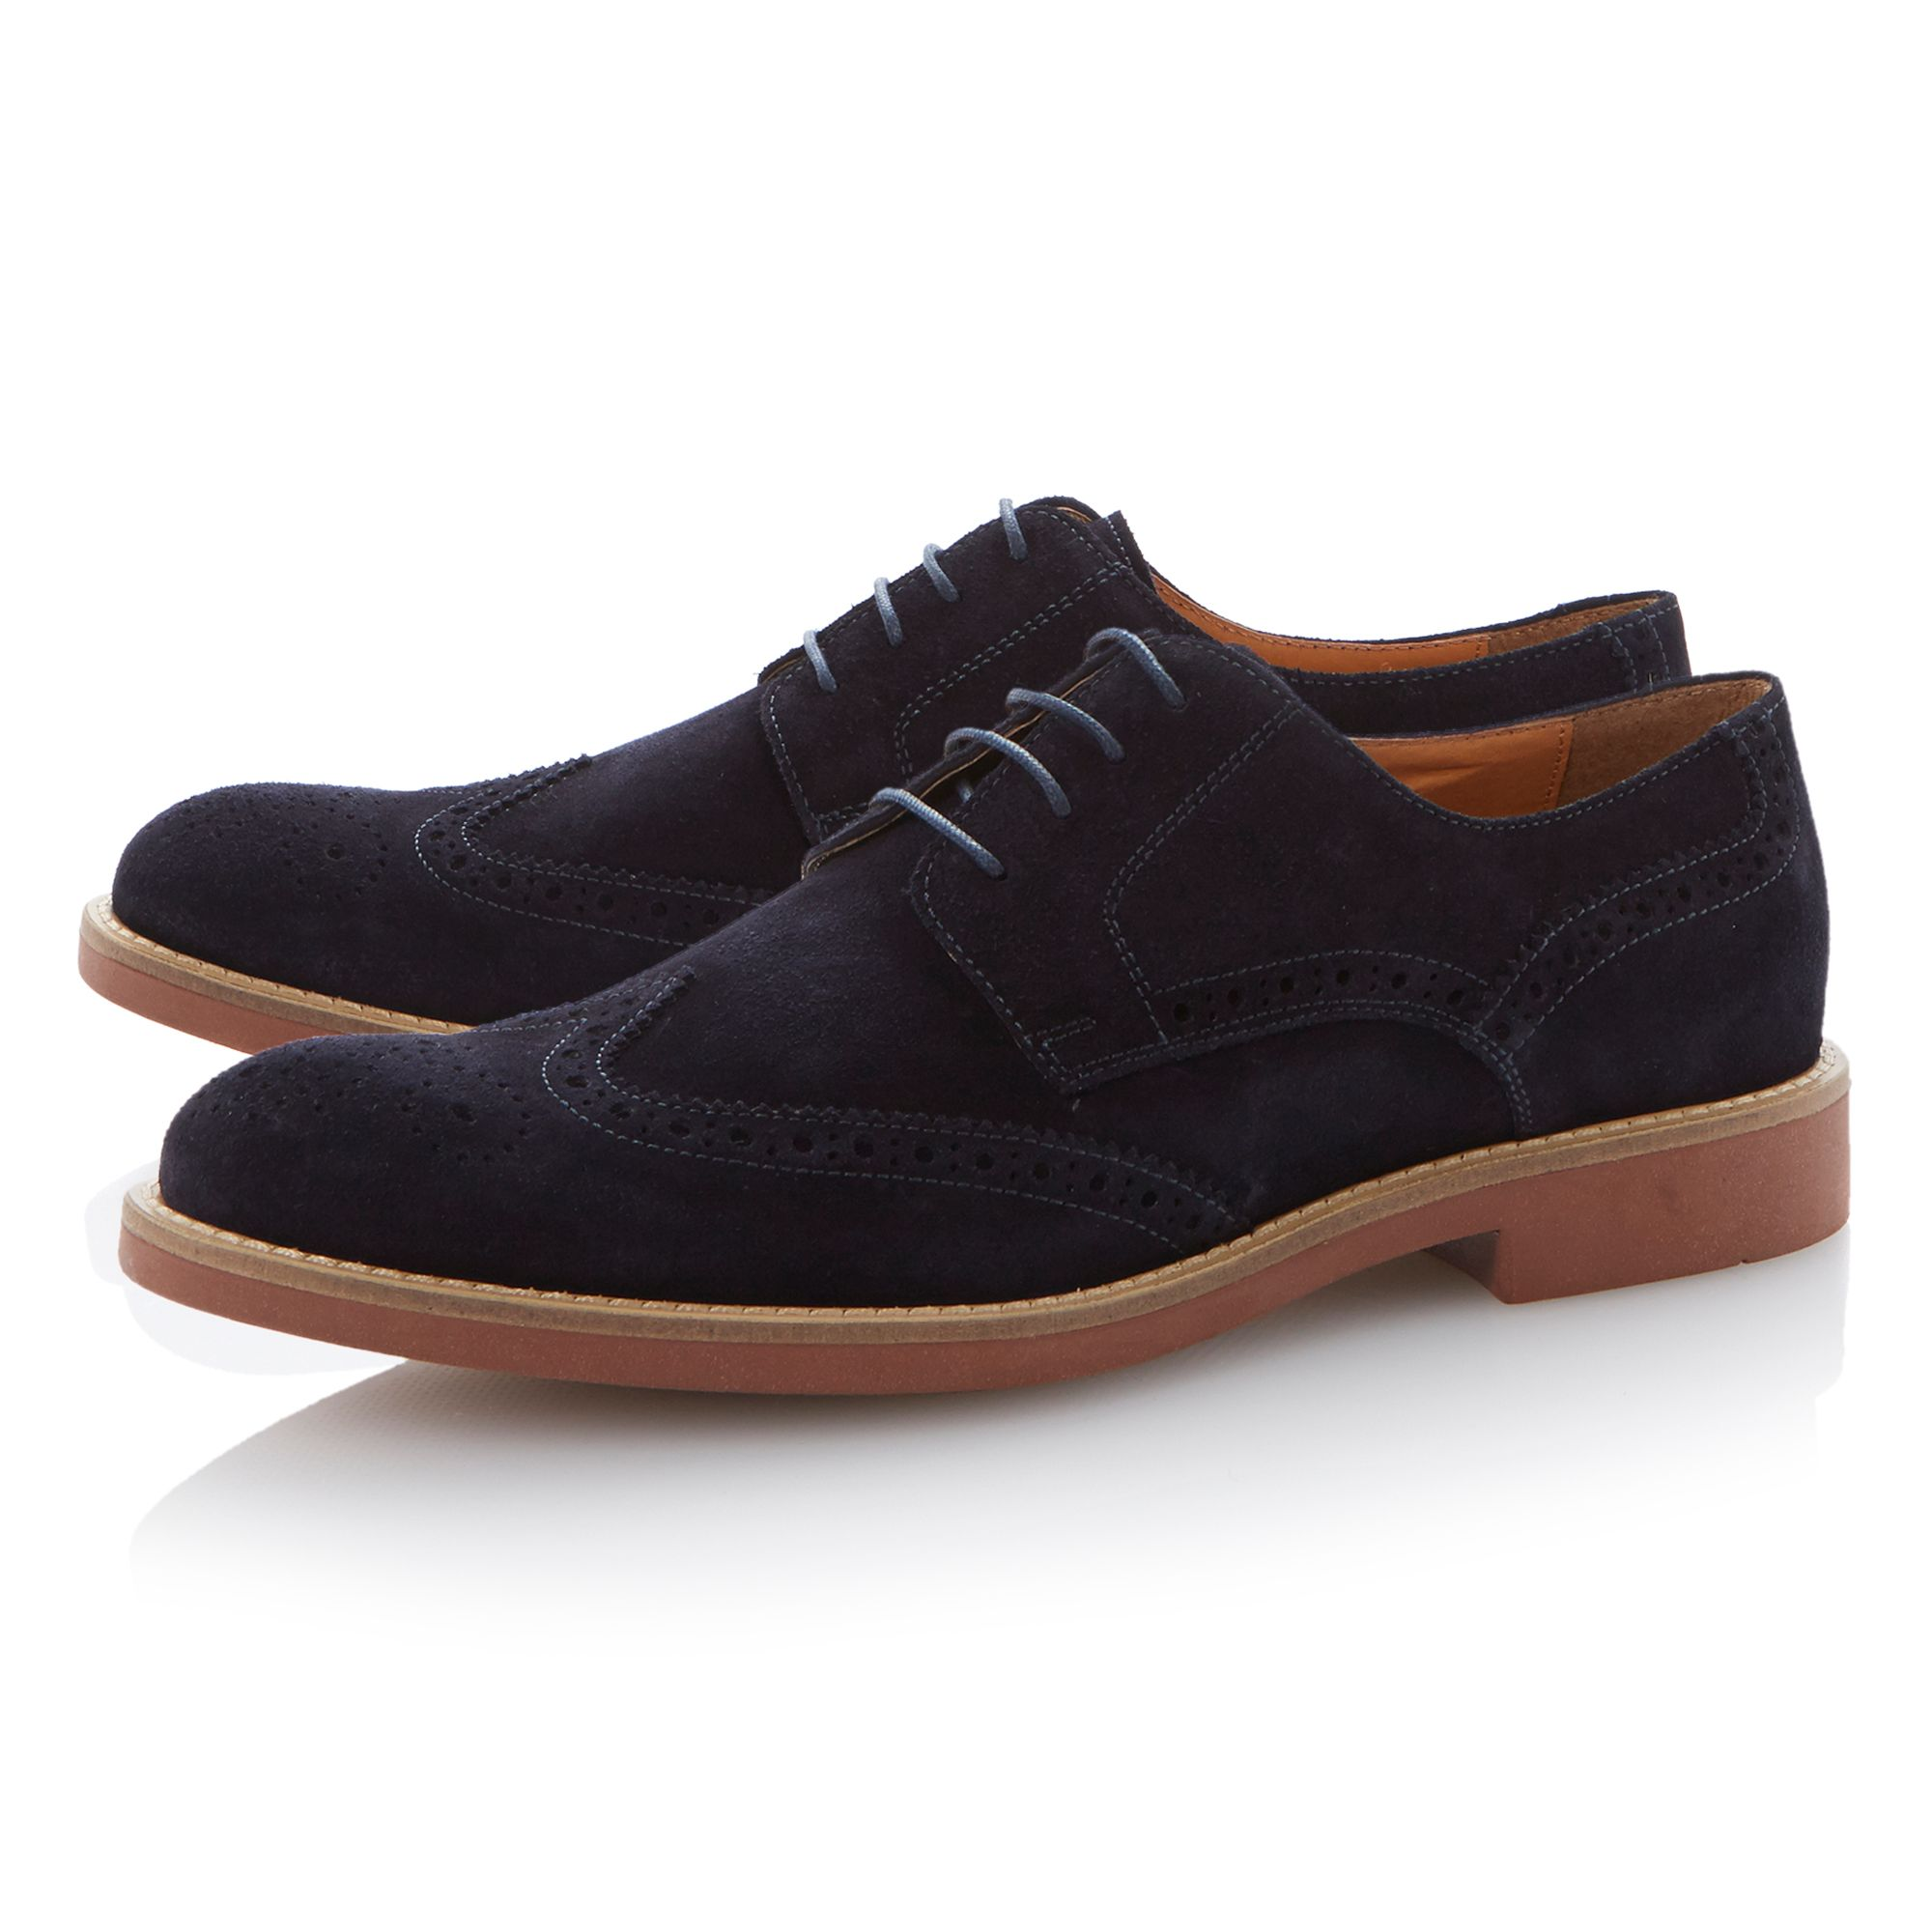 Basel lace up suede brogues